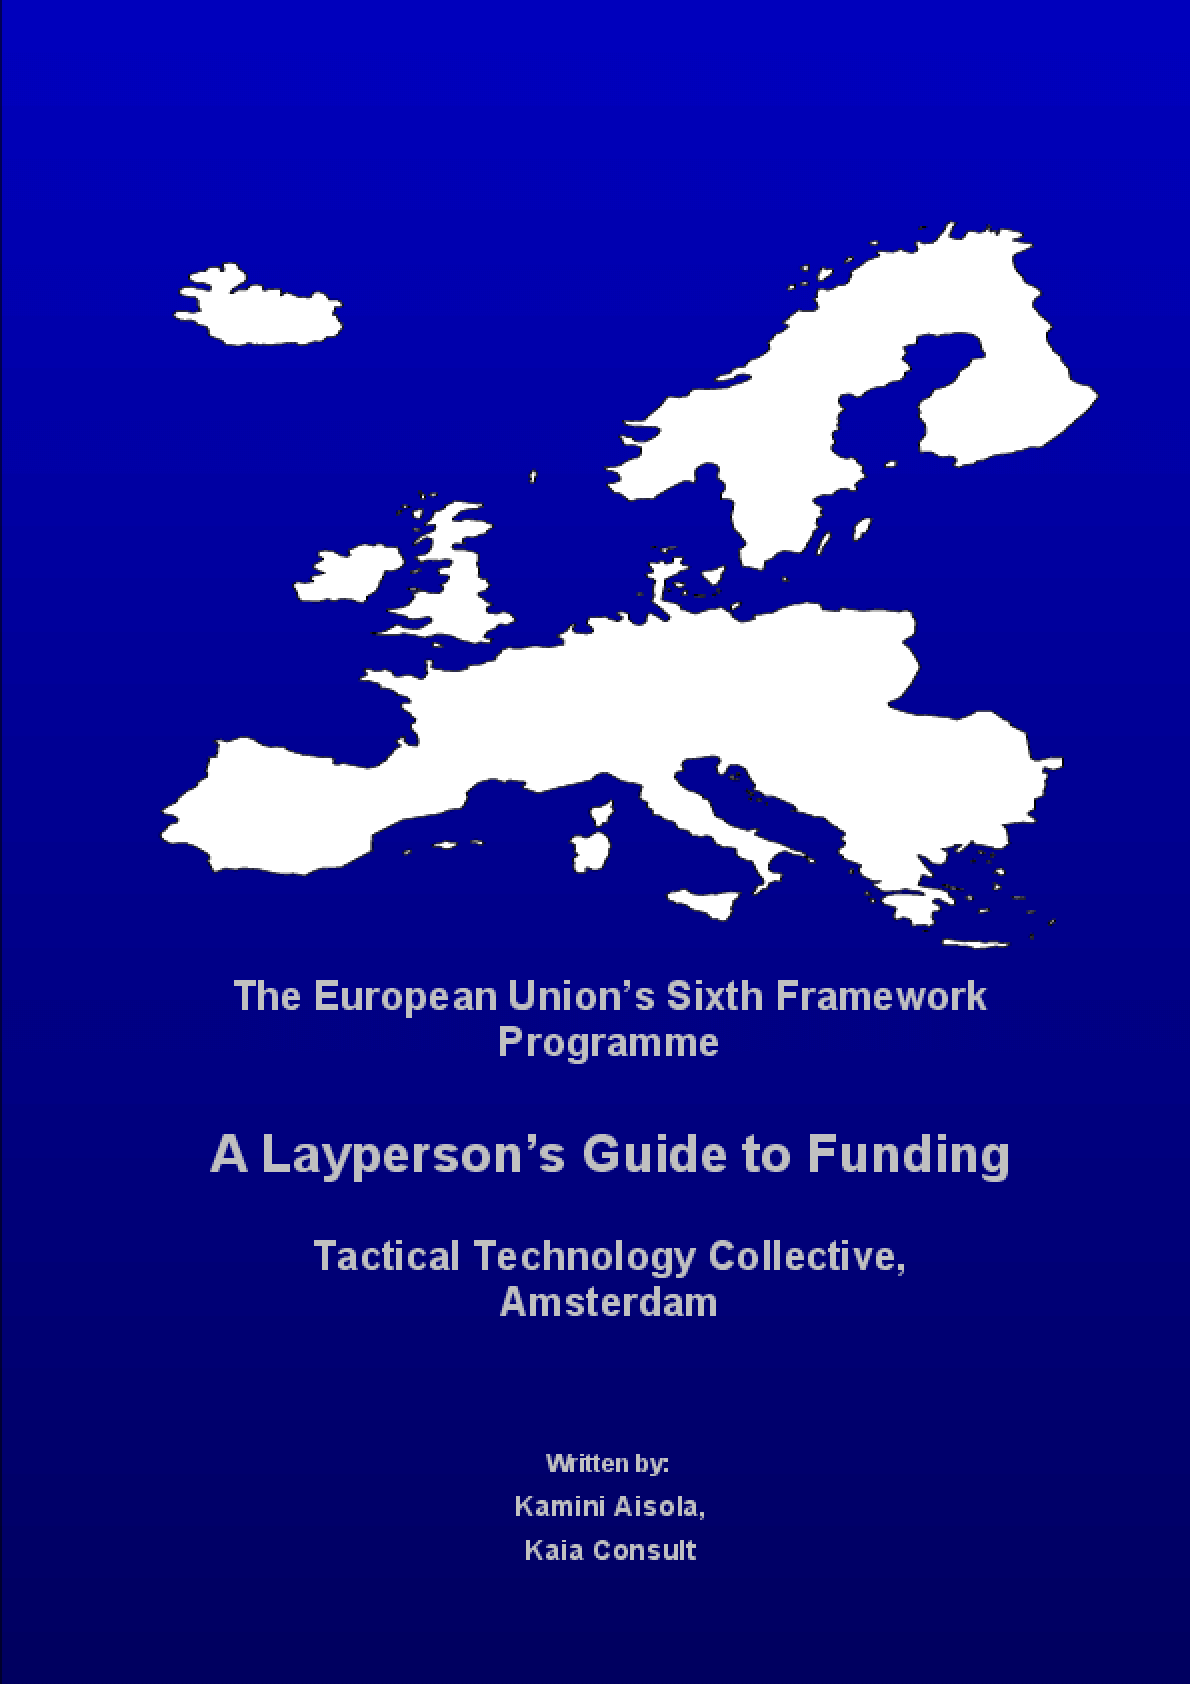 The Sixth Framework Programme of the European Union: A Layperson's Guide to Funding